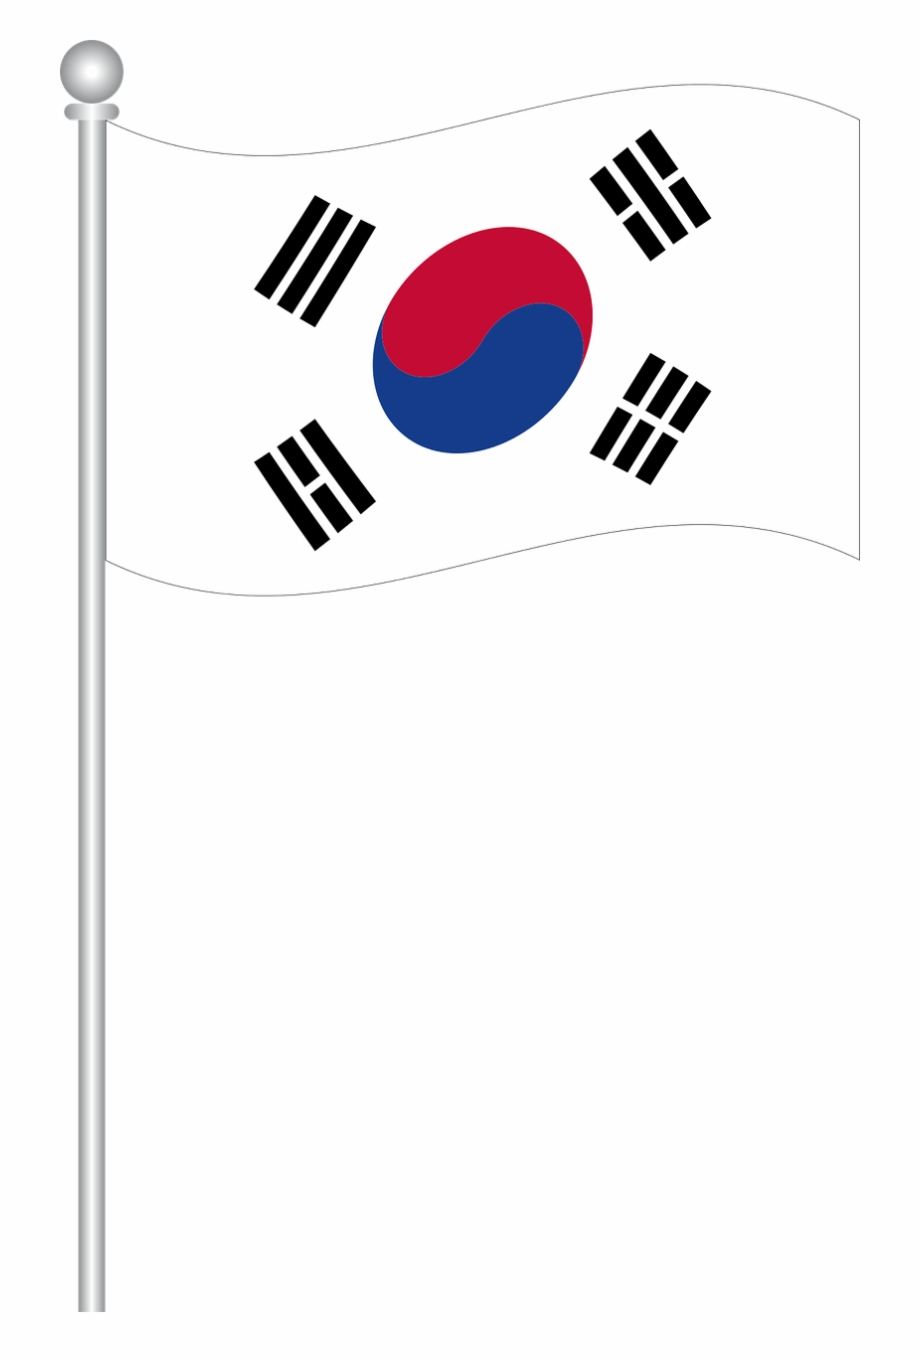 South korea flag clipart picture free stock Flag Of South Korea World Flags Png Image - South Korea Flag ... picture free stock